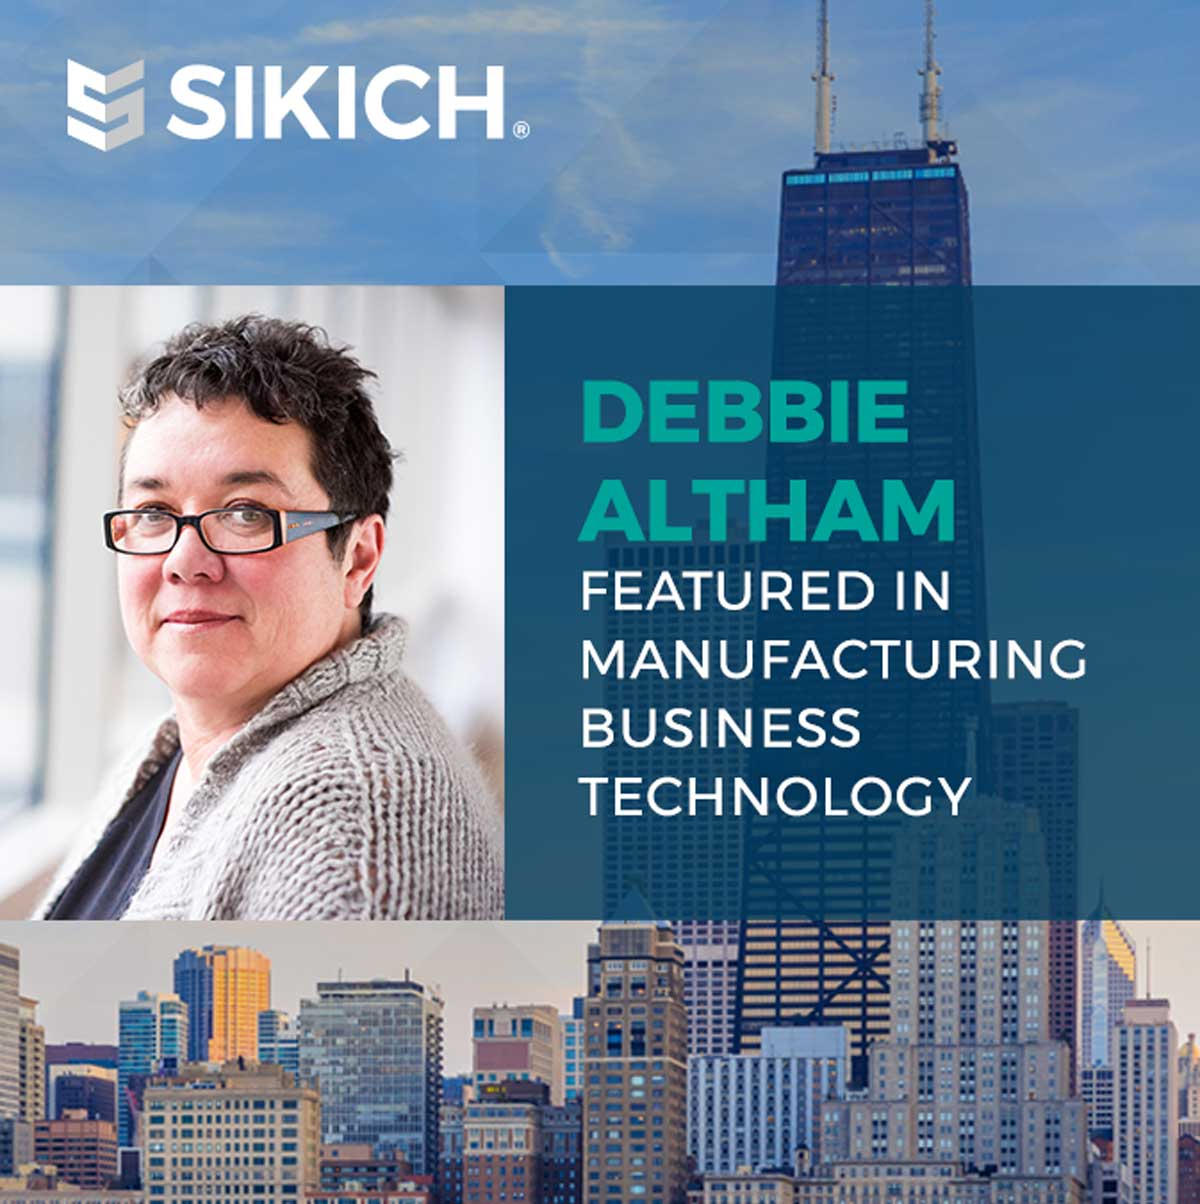 Debbie Altham featured in Manufacturing Business Technology